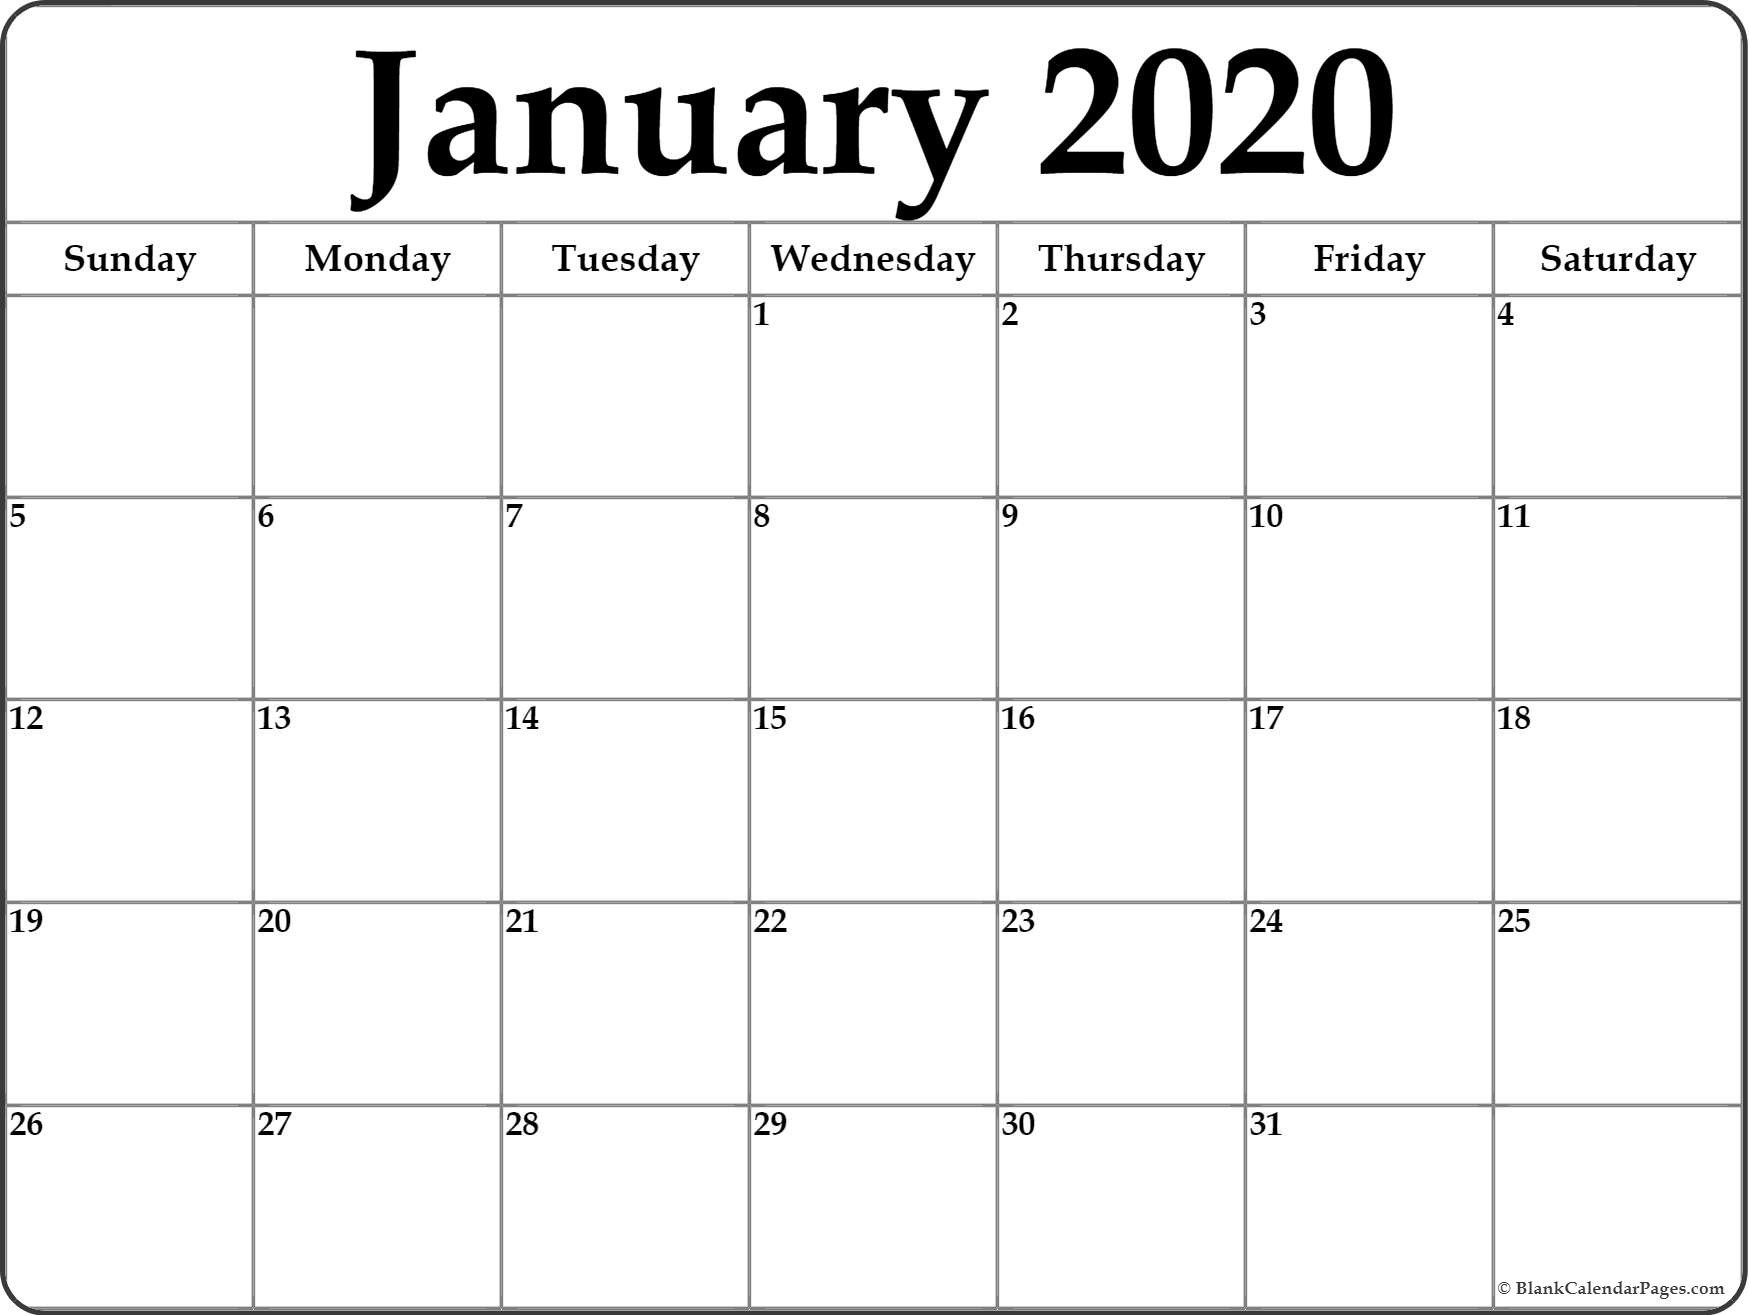 January 2020 Calendar | Free Printable Monthly Calendars-Month Of January 2020 Calendar